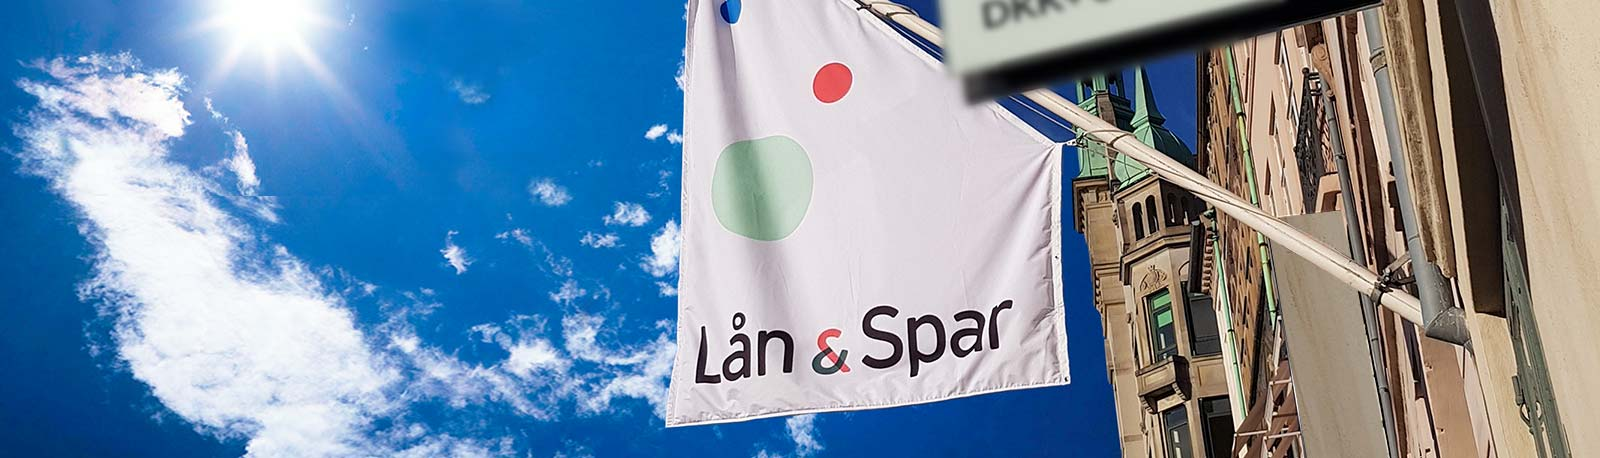 Lån & Spar Bank flag